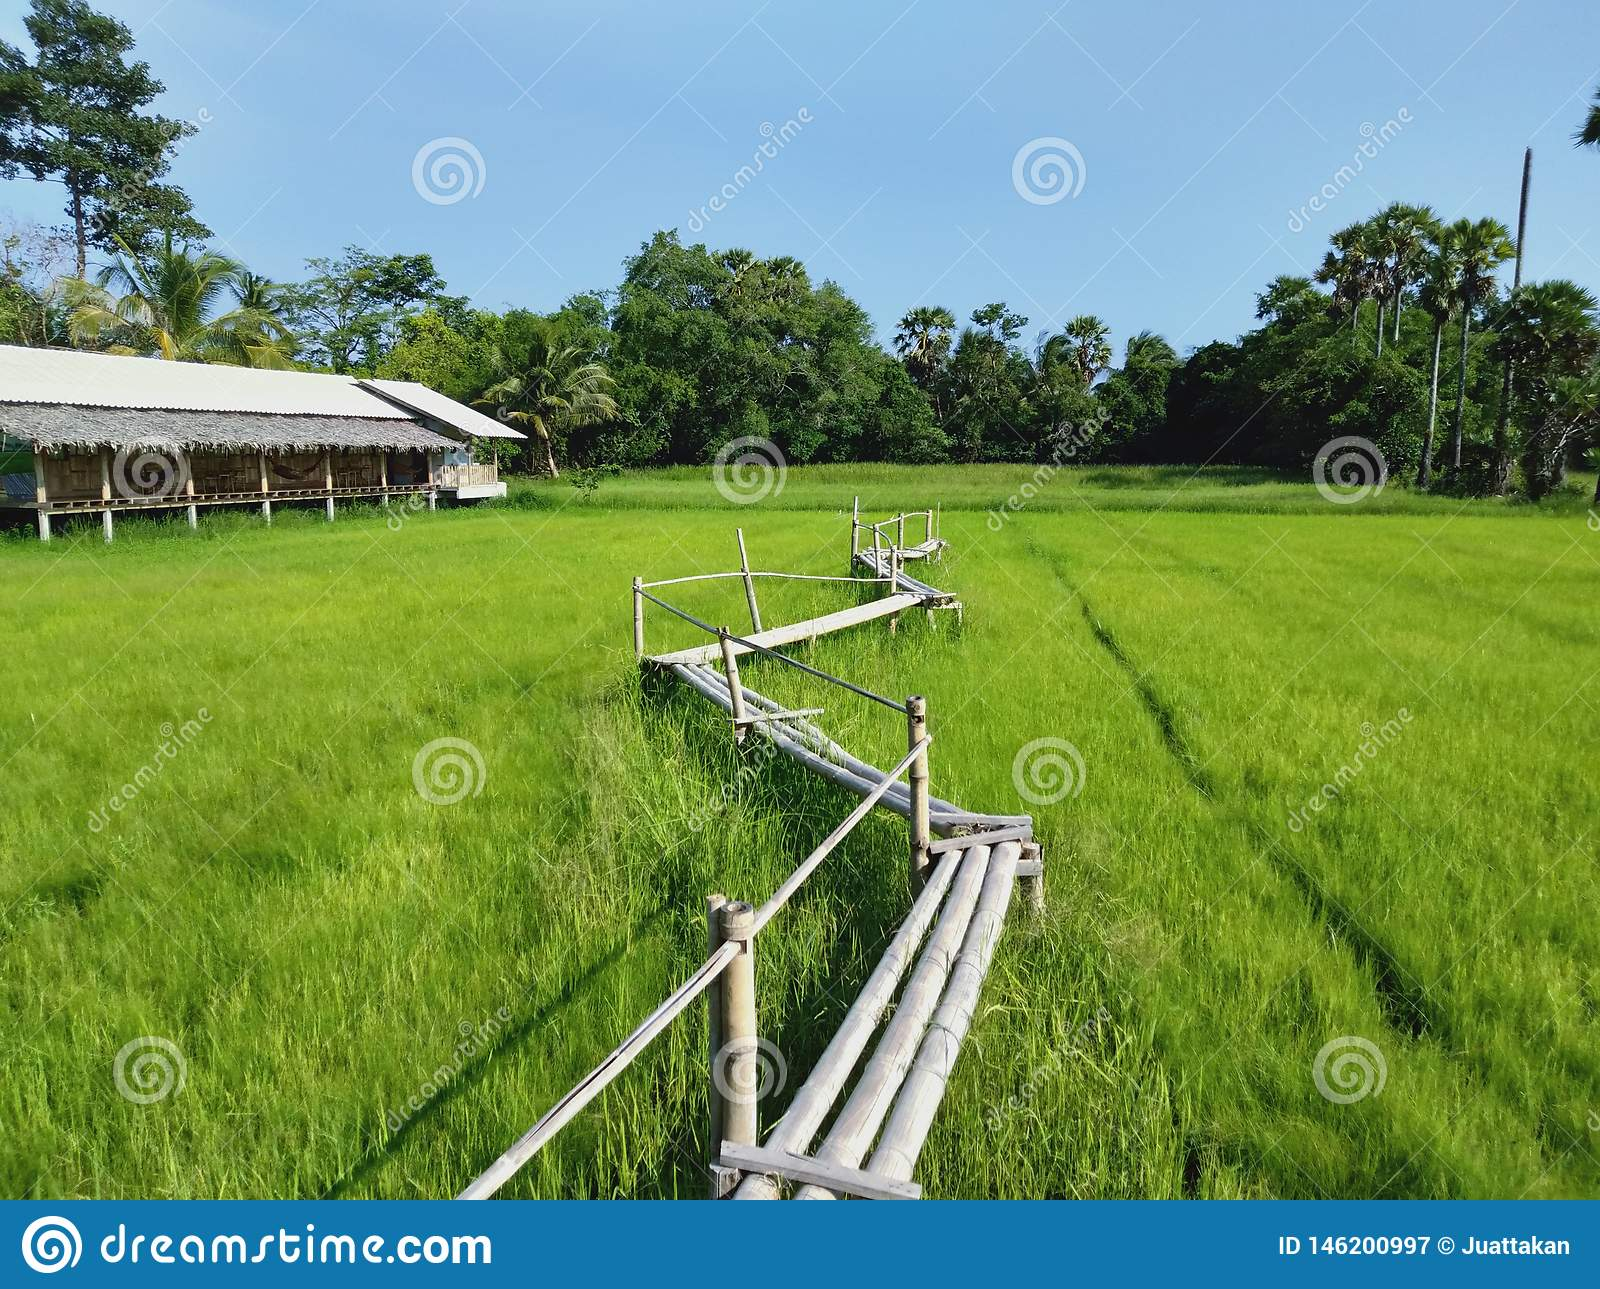 Bamboo bridge in the middle of rice fields